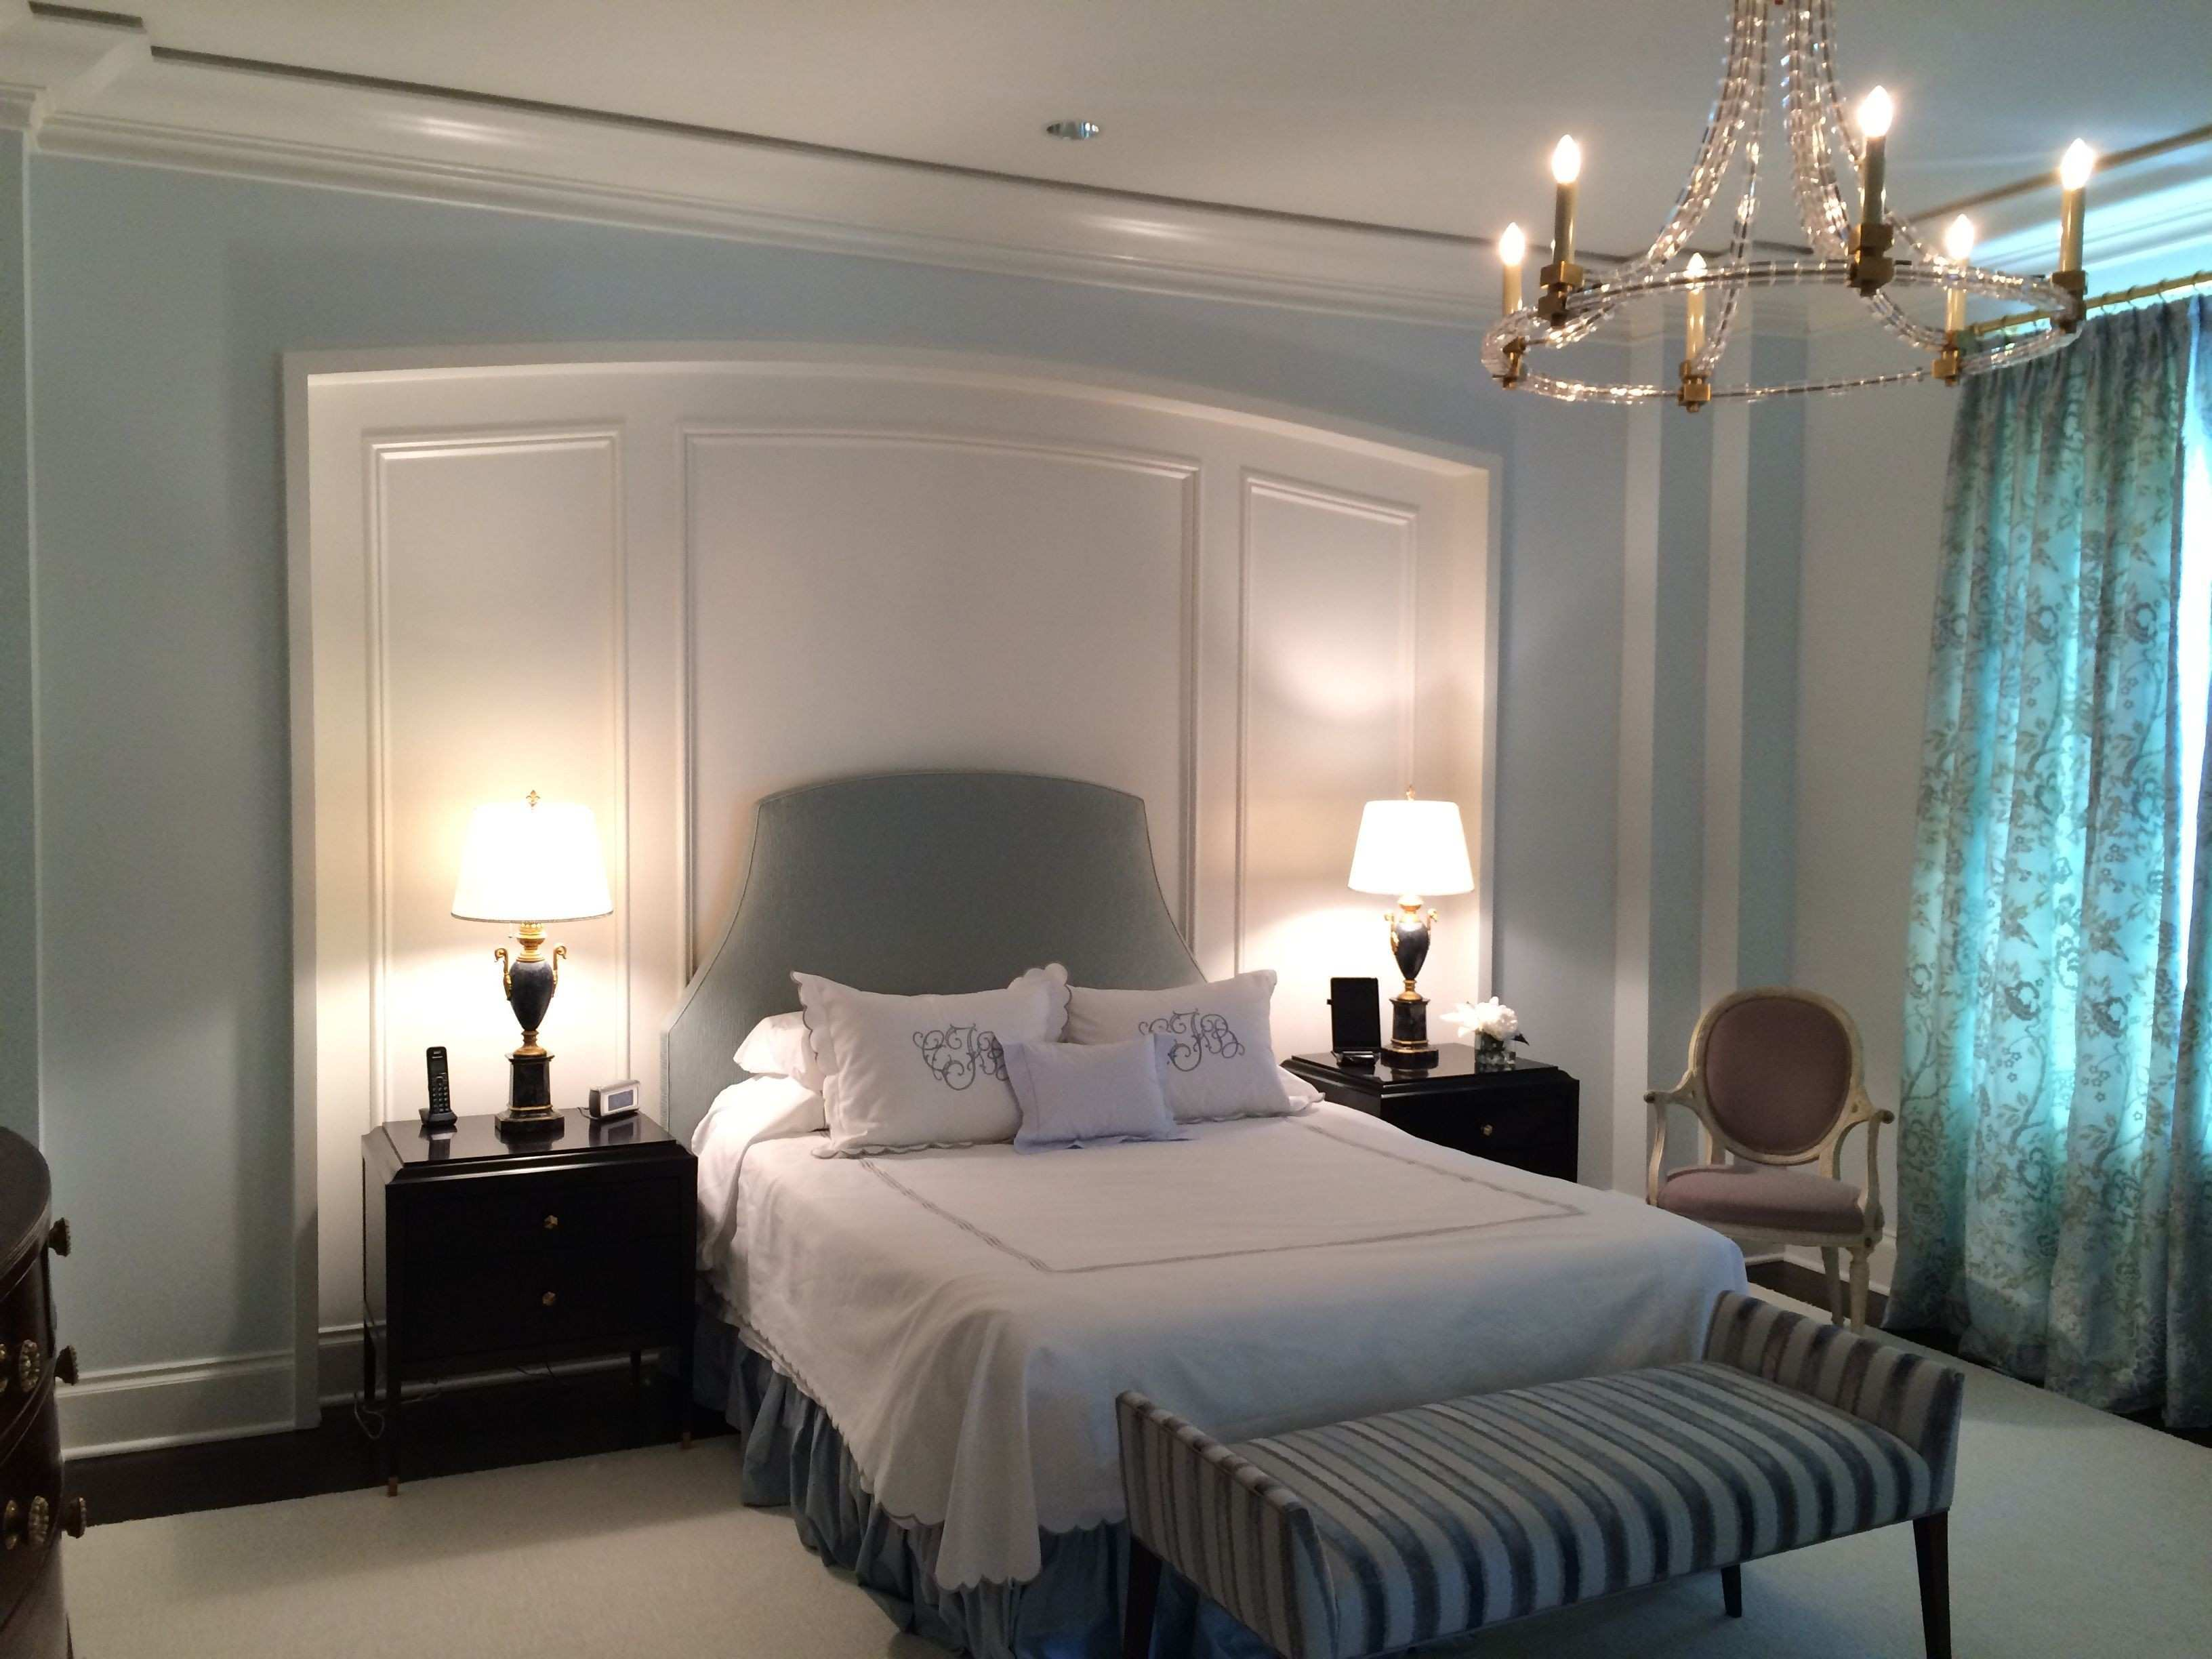 Picture Frame Molding On Walls Inspirational Created Bed Niche with ...